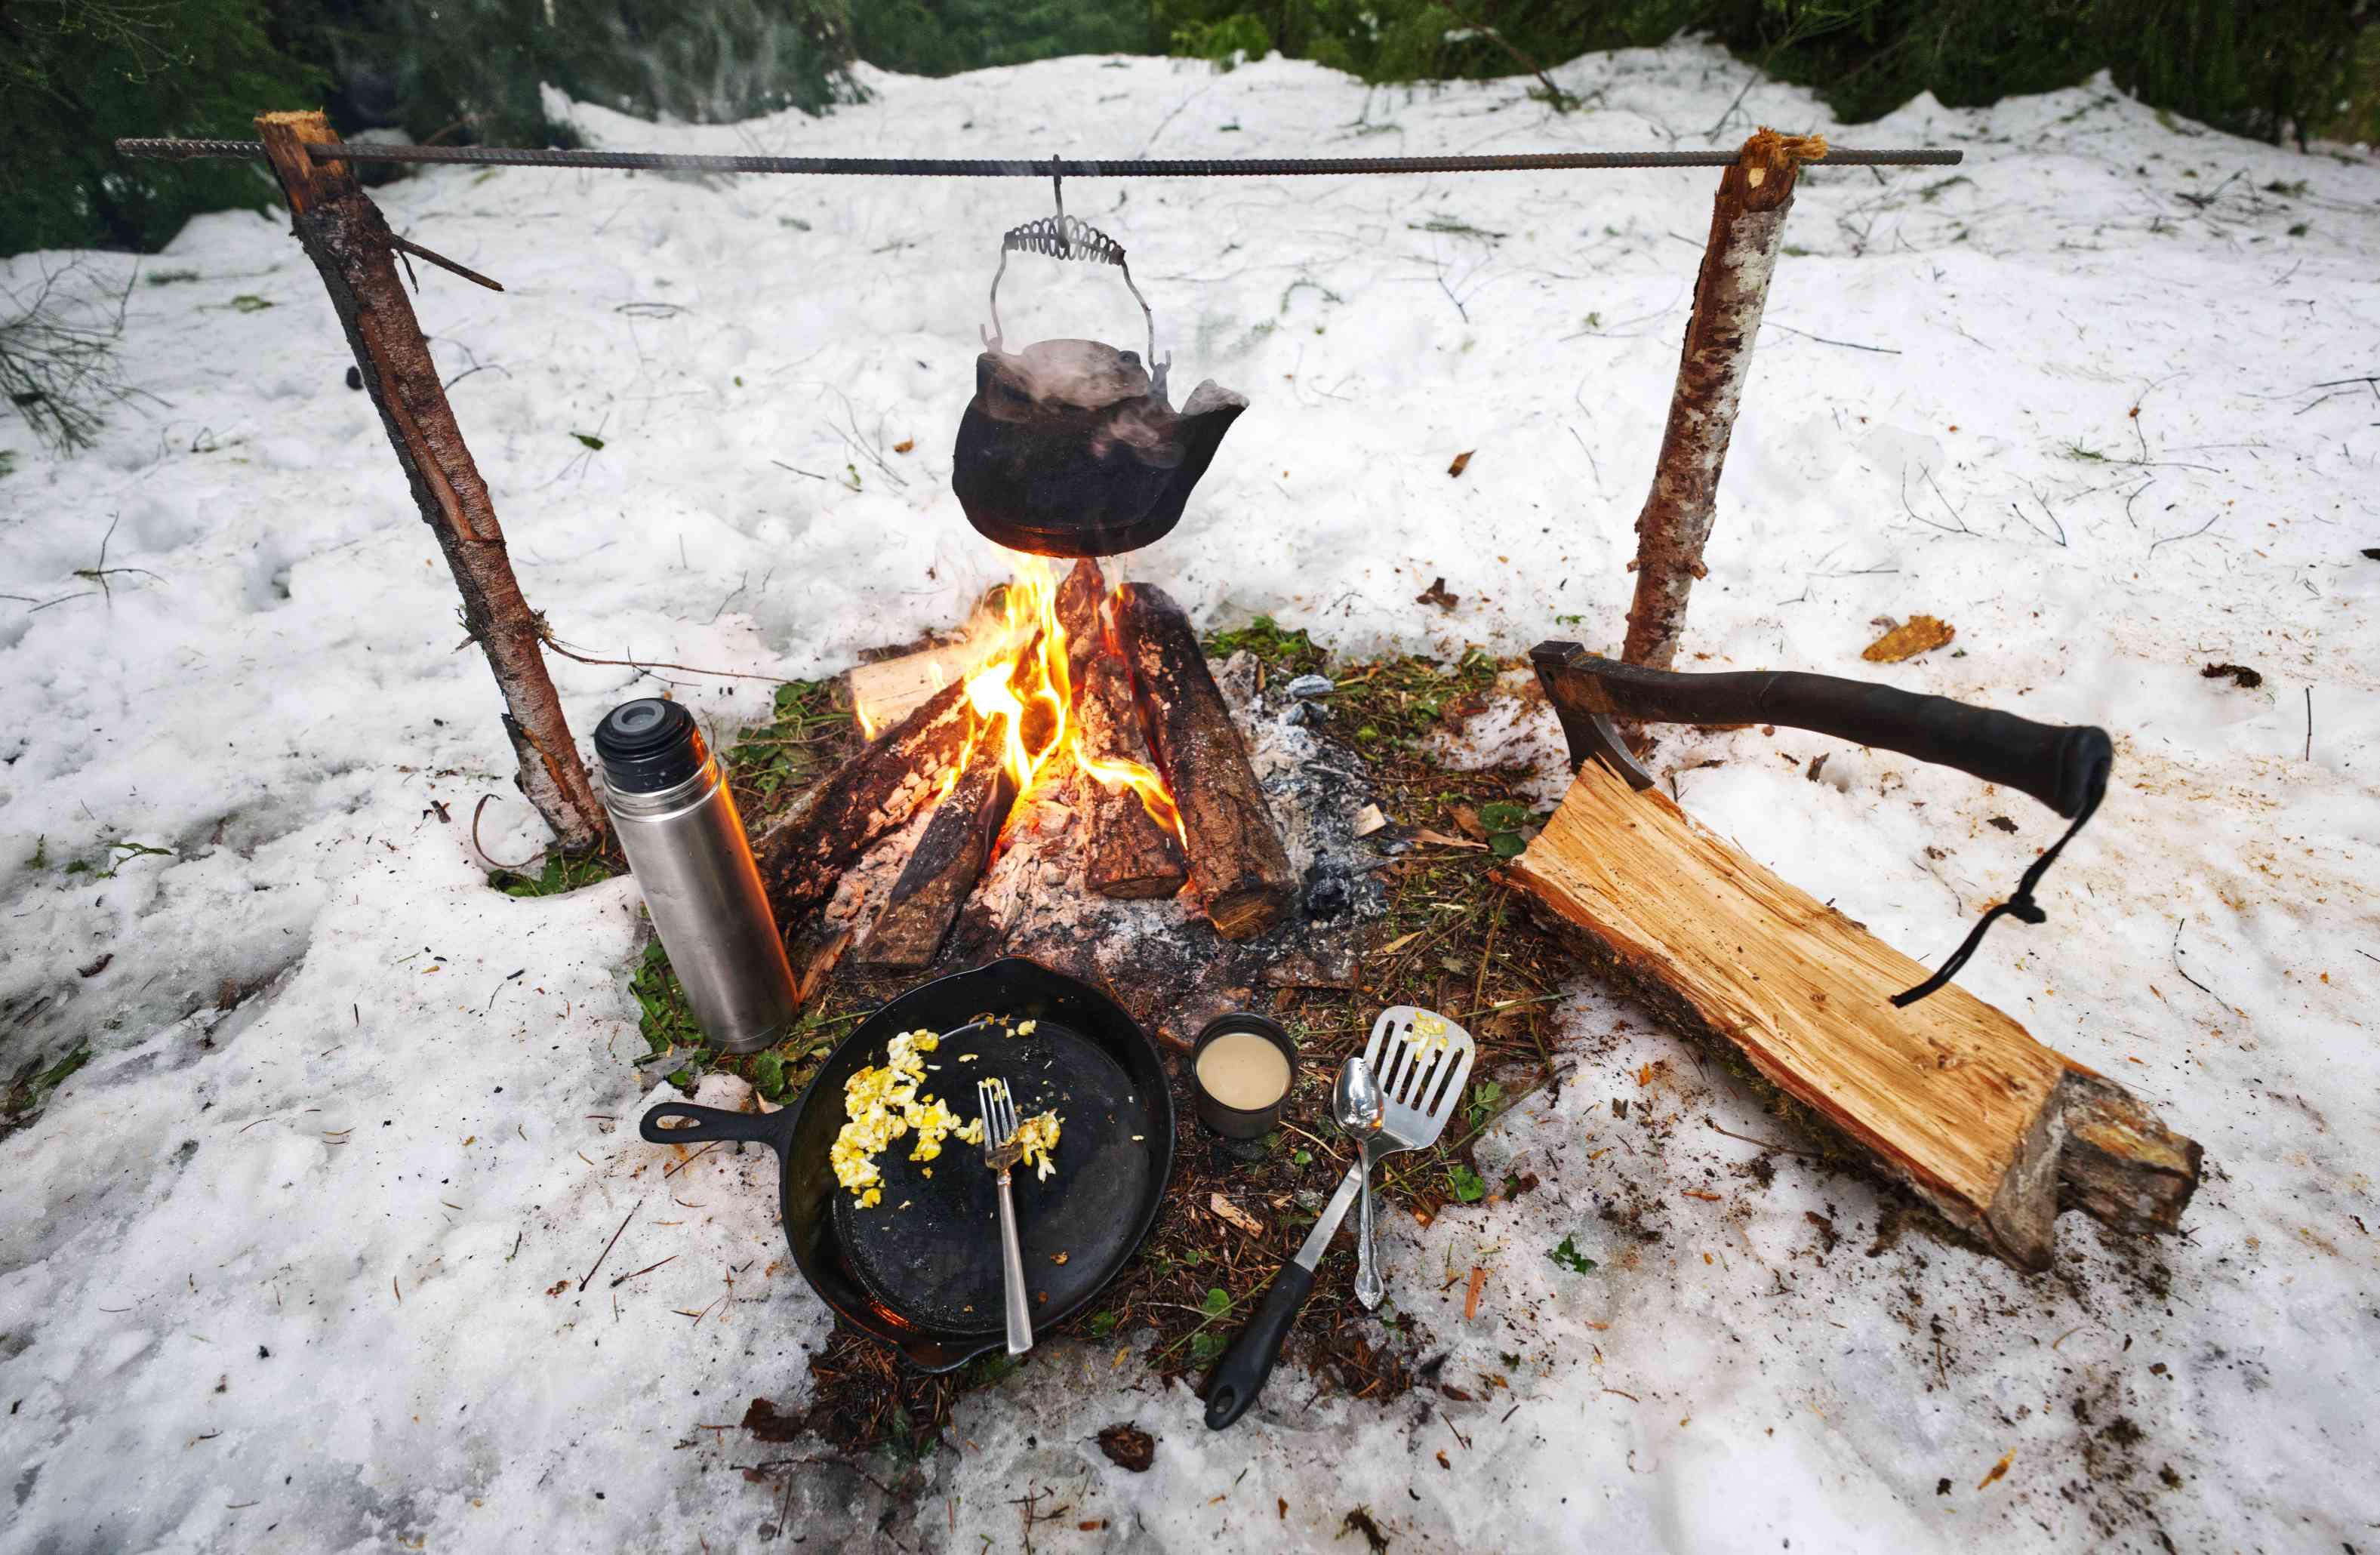 camping kitchen setup with campfire and kettle and cast iron skillet in snow